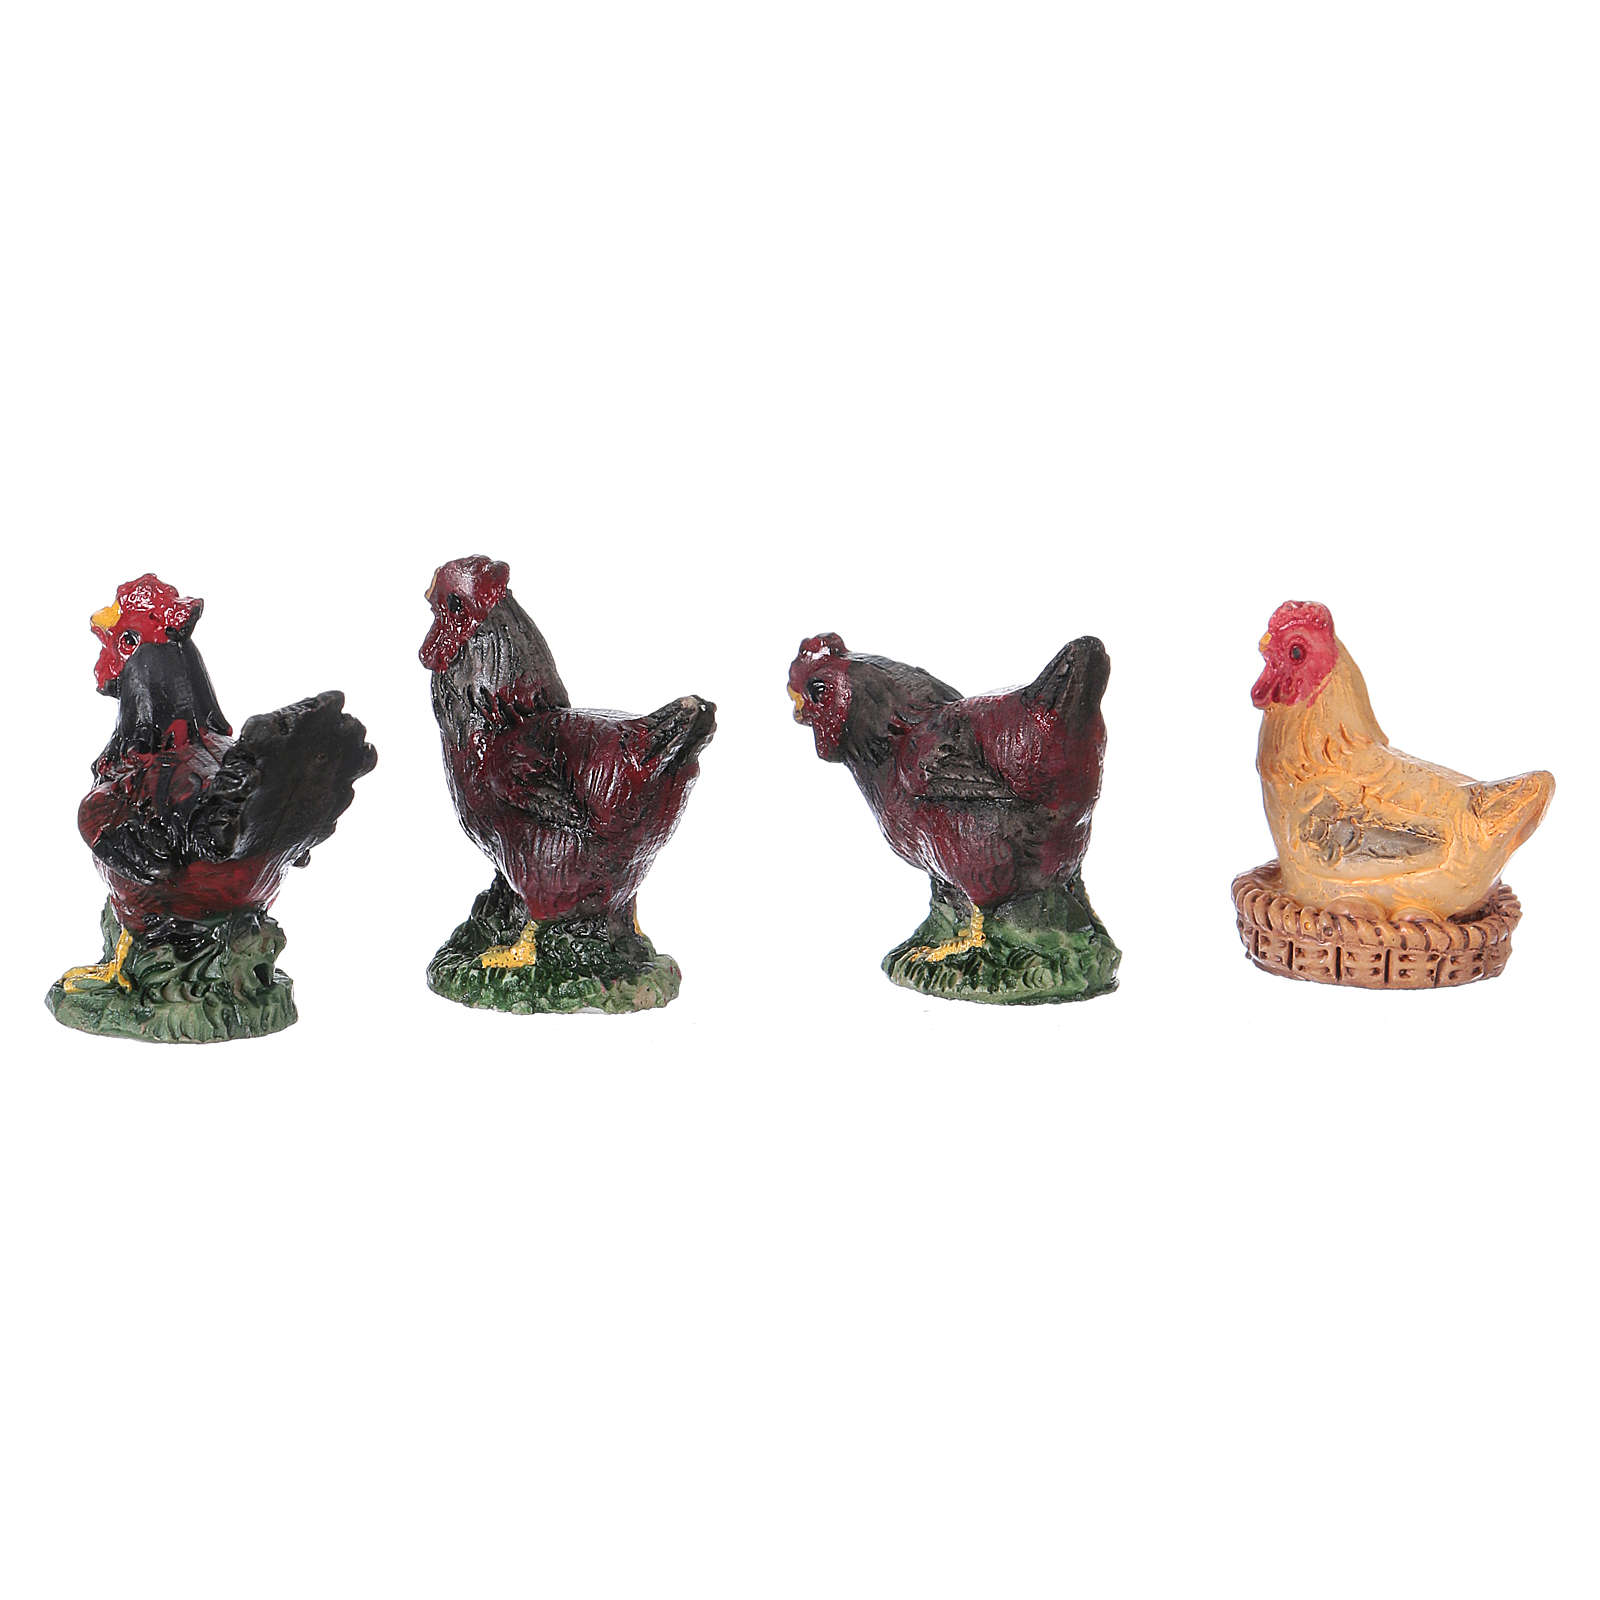 Rooster and hens in resin for 10 cm Nativity scene Moranduzzo, 4 pcs 4